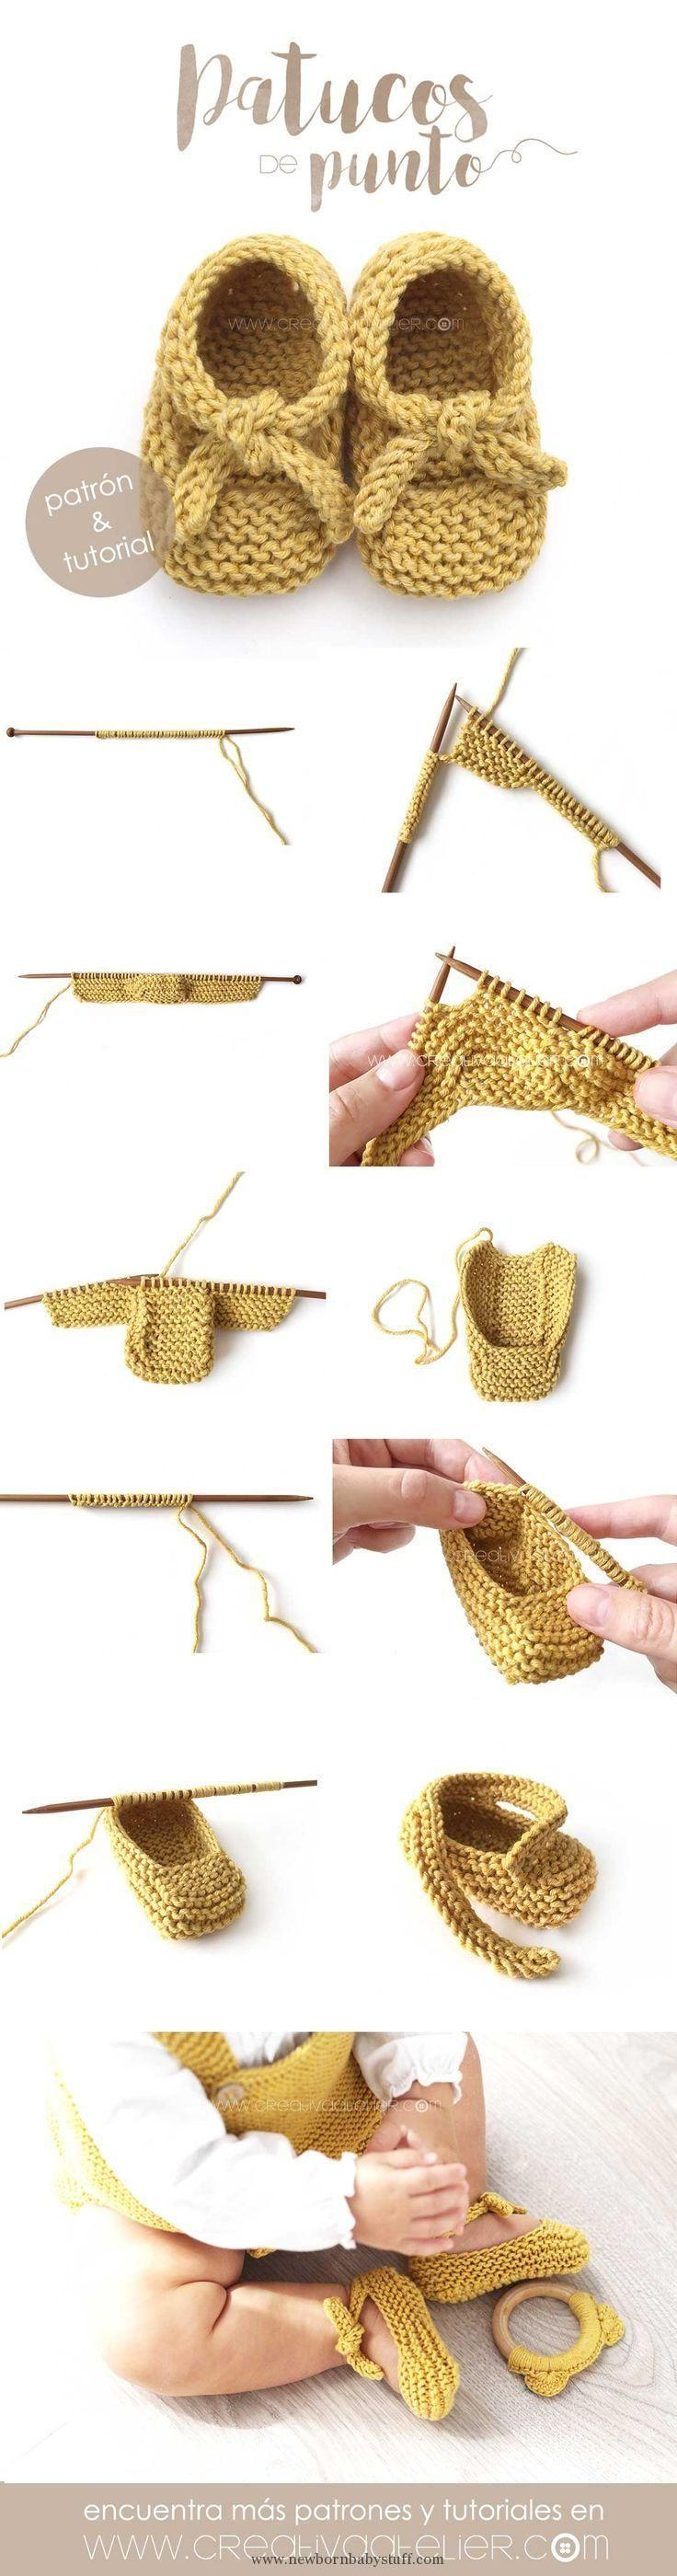 Knitting 34 Images On Essayer Best Pinterest Projets Baby À 8p8avSq